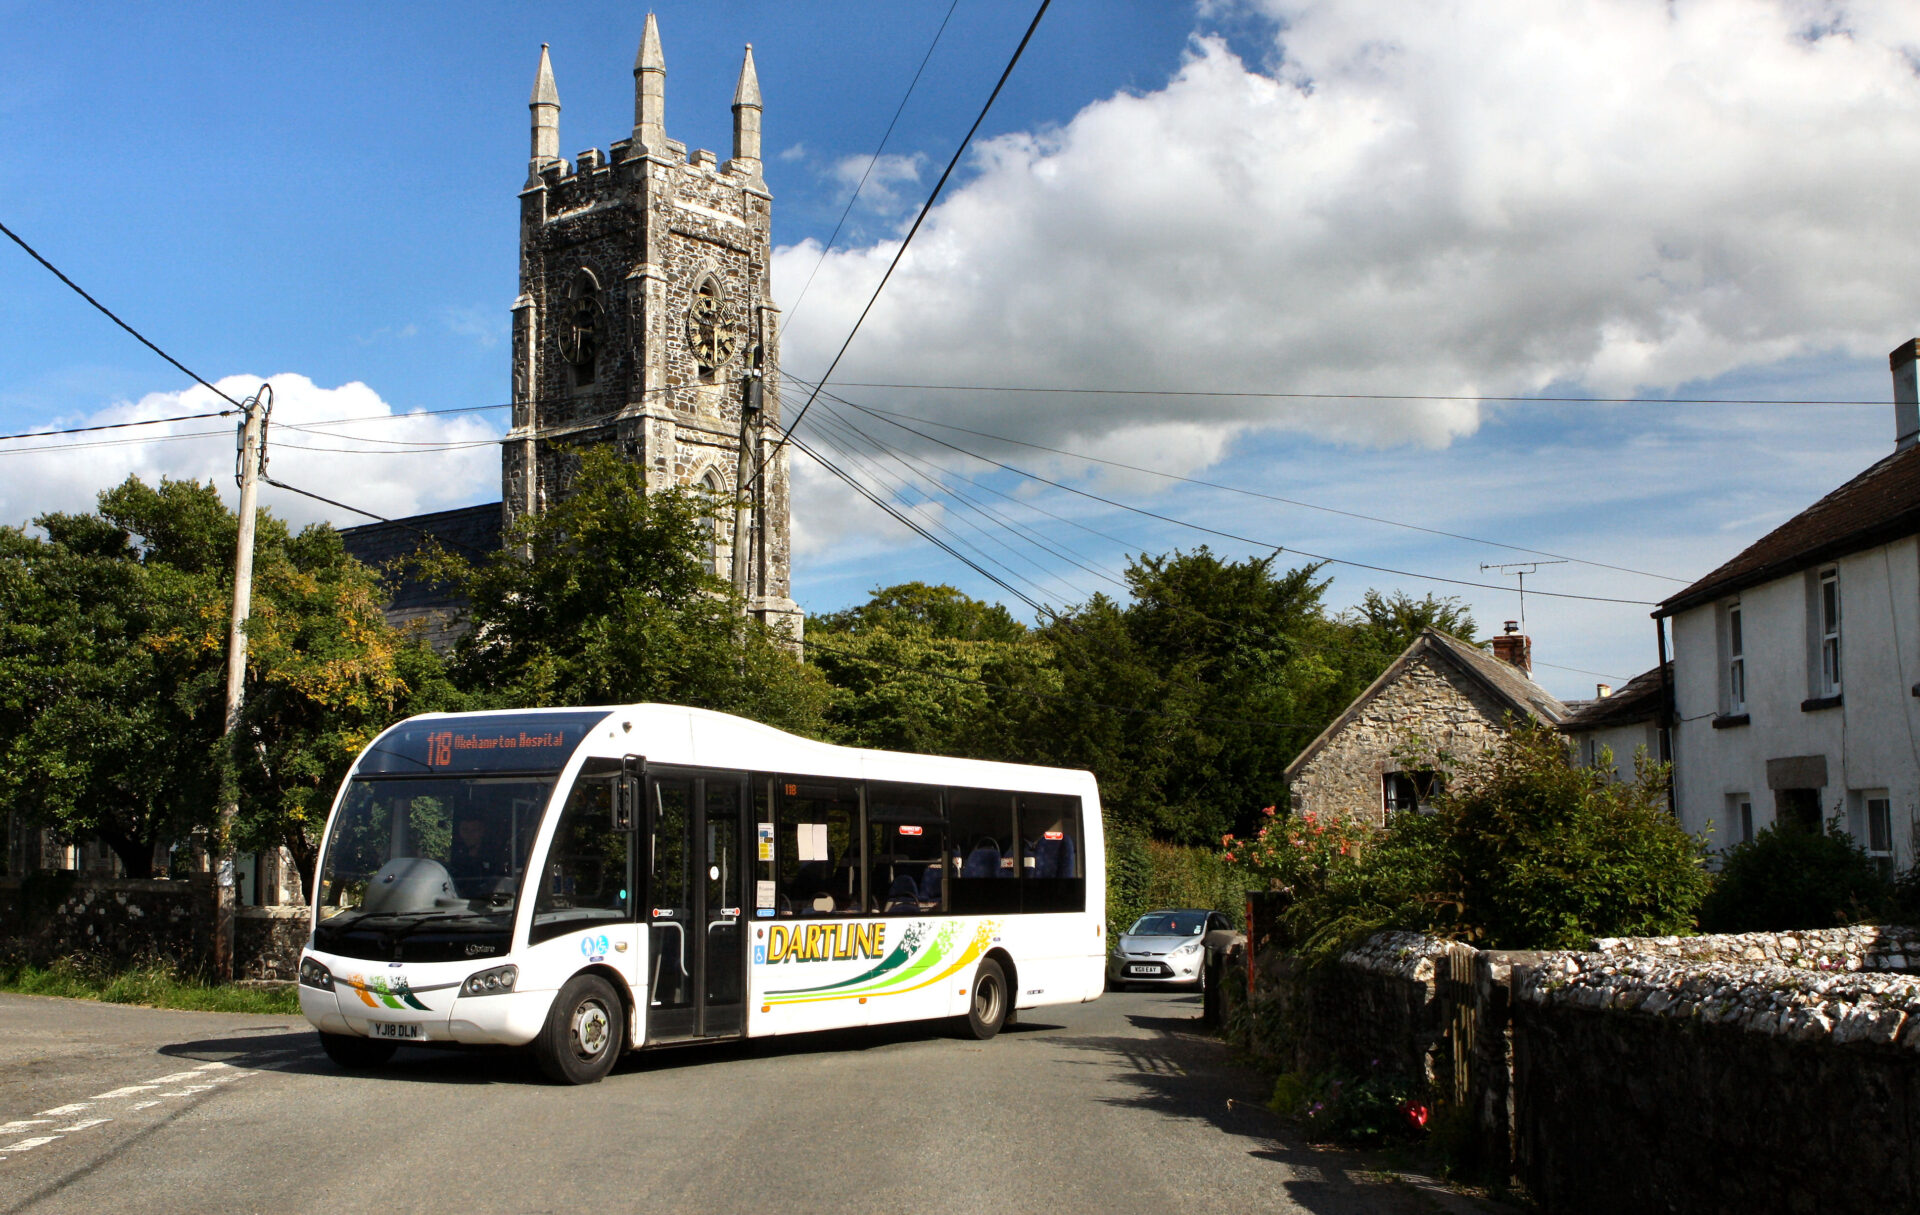 .... here's the bus, the 118 from Okehampton to Tavistock, stopping at pretty villages en-route.